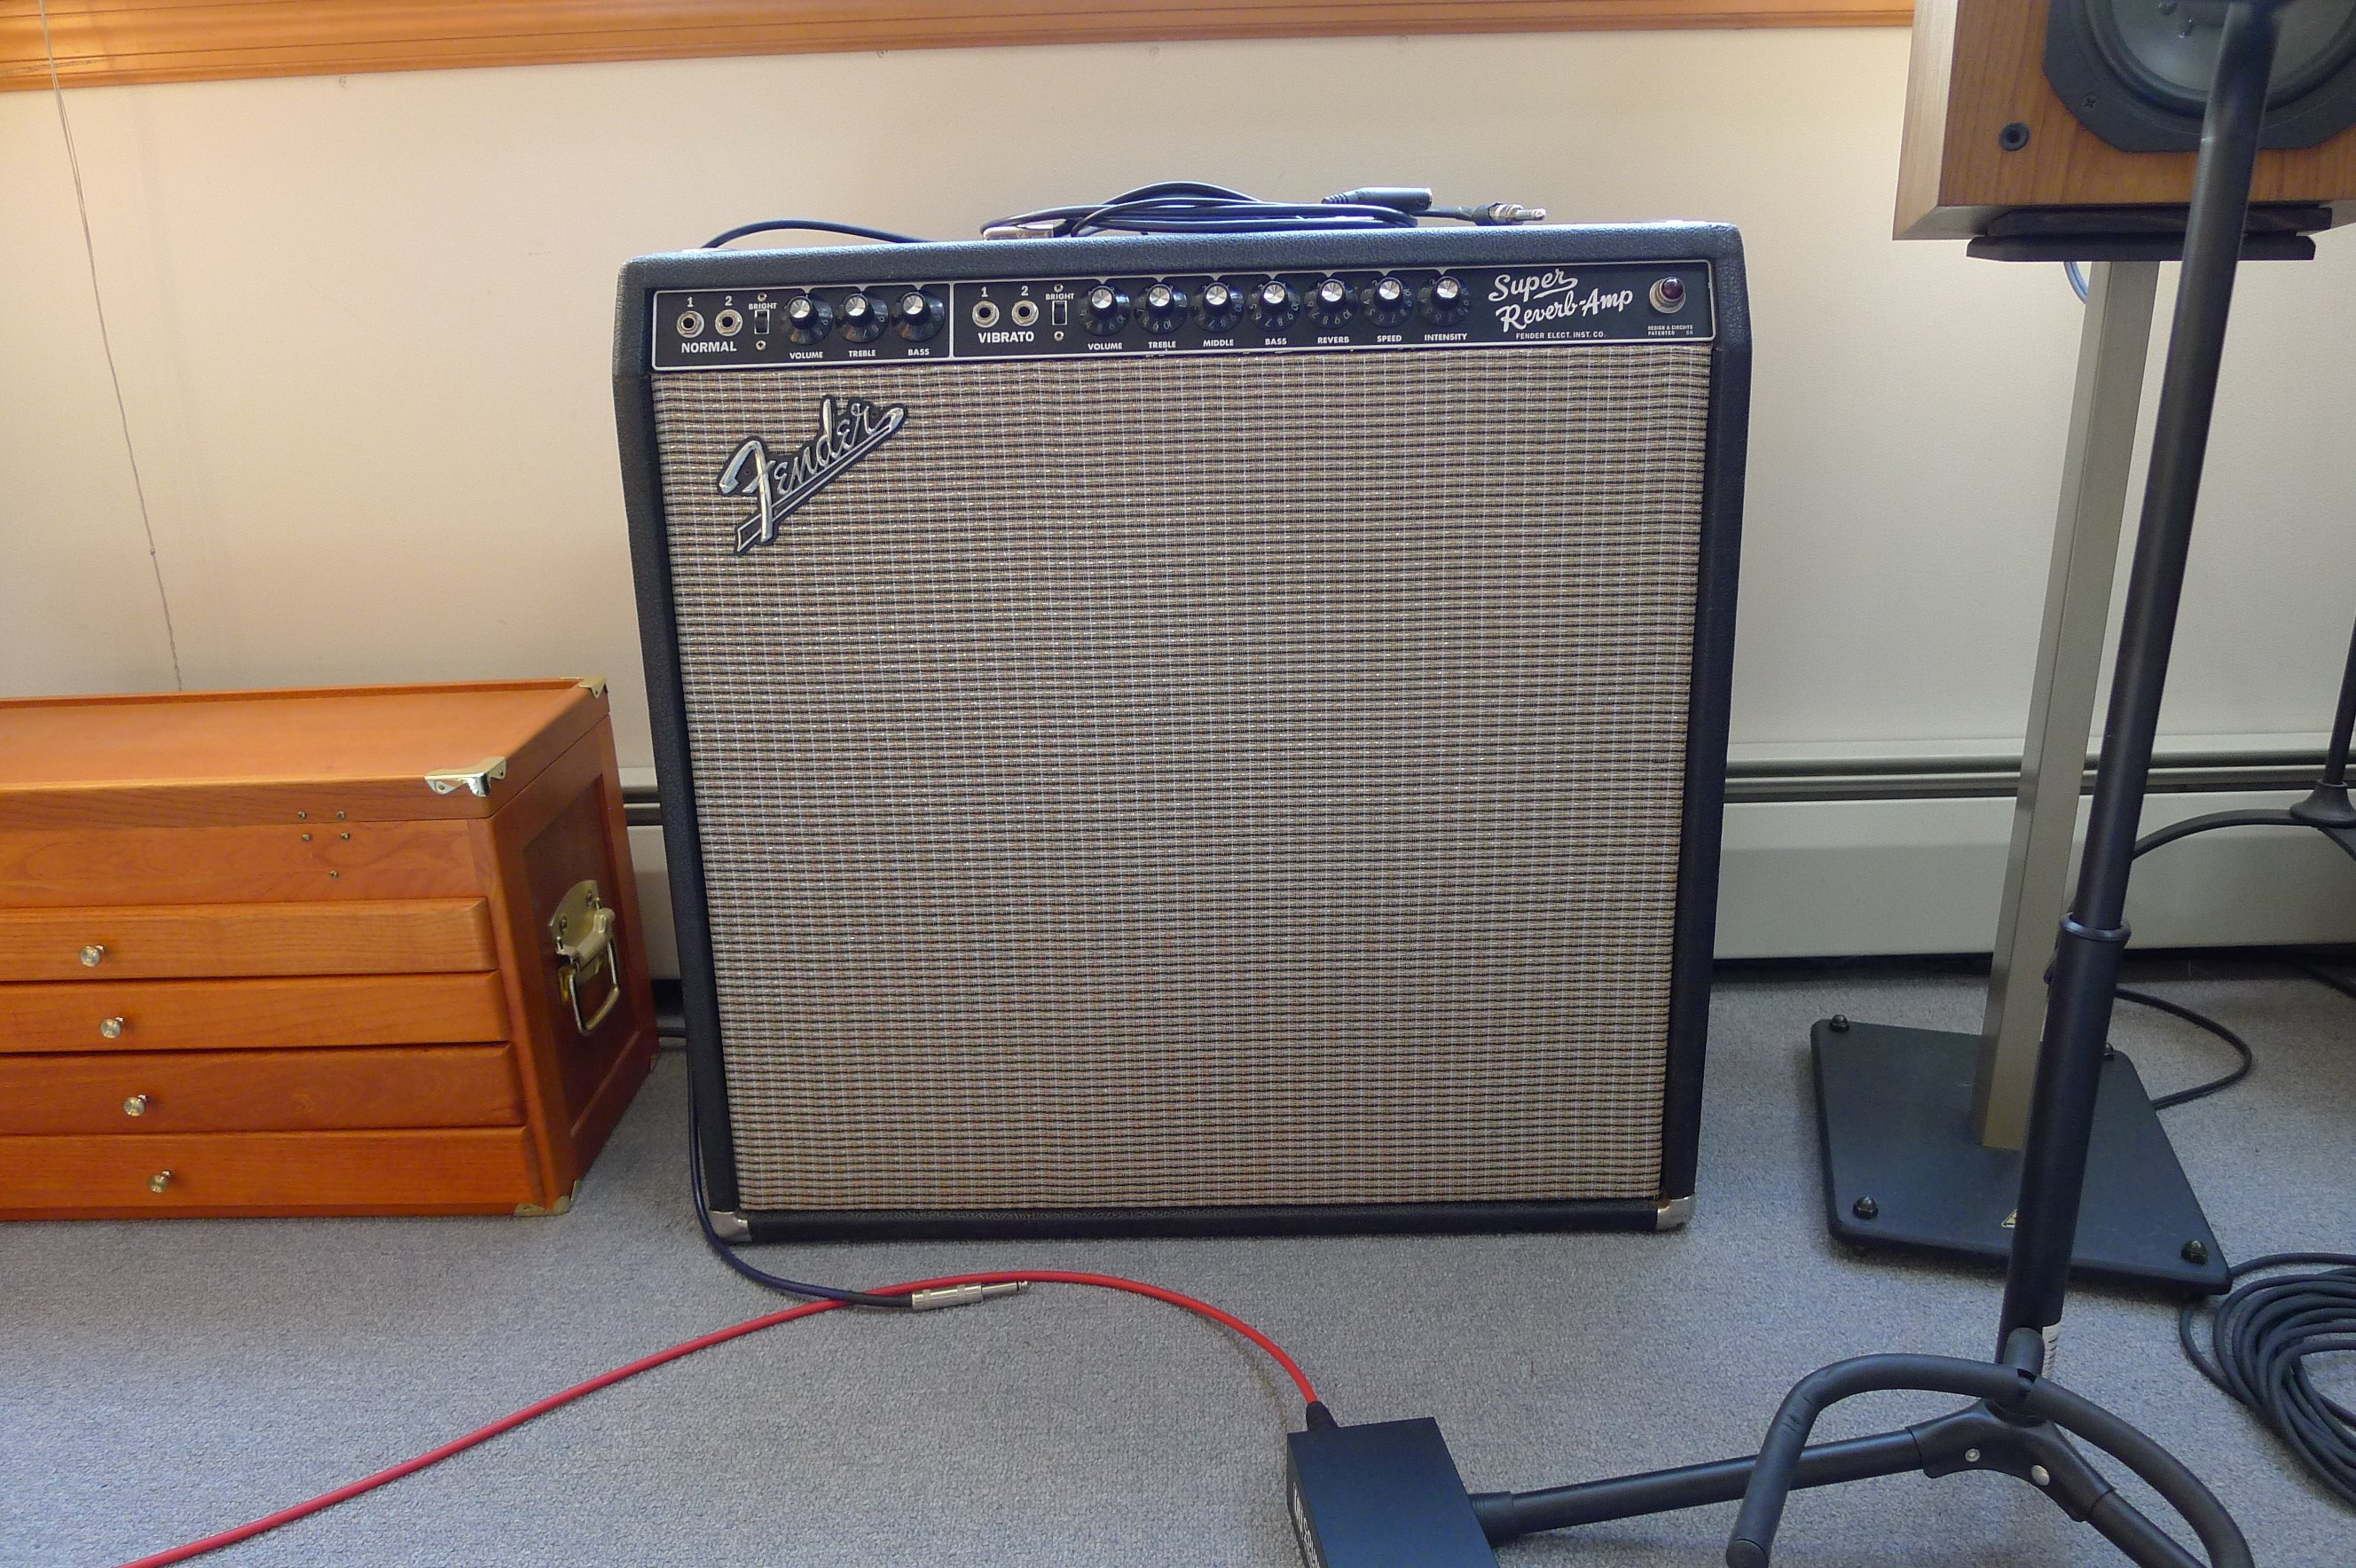 1968 Fender Super Reverb The Classic 4 X 10 Air Cannon Amp Has Been Completely Gone Over By Our Resident Guru Mark Howson